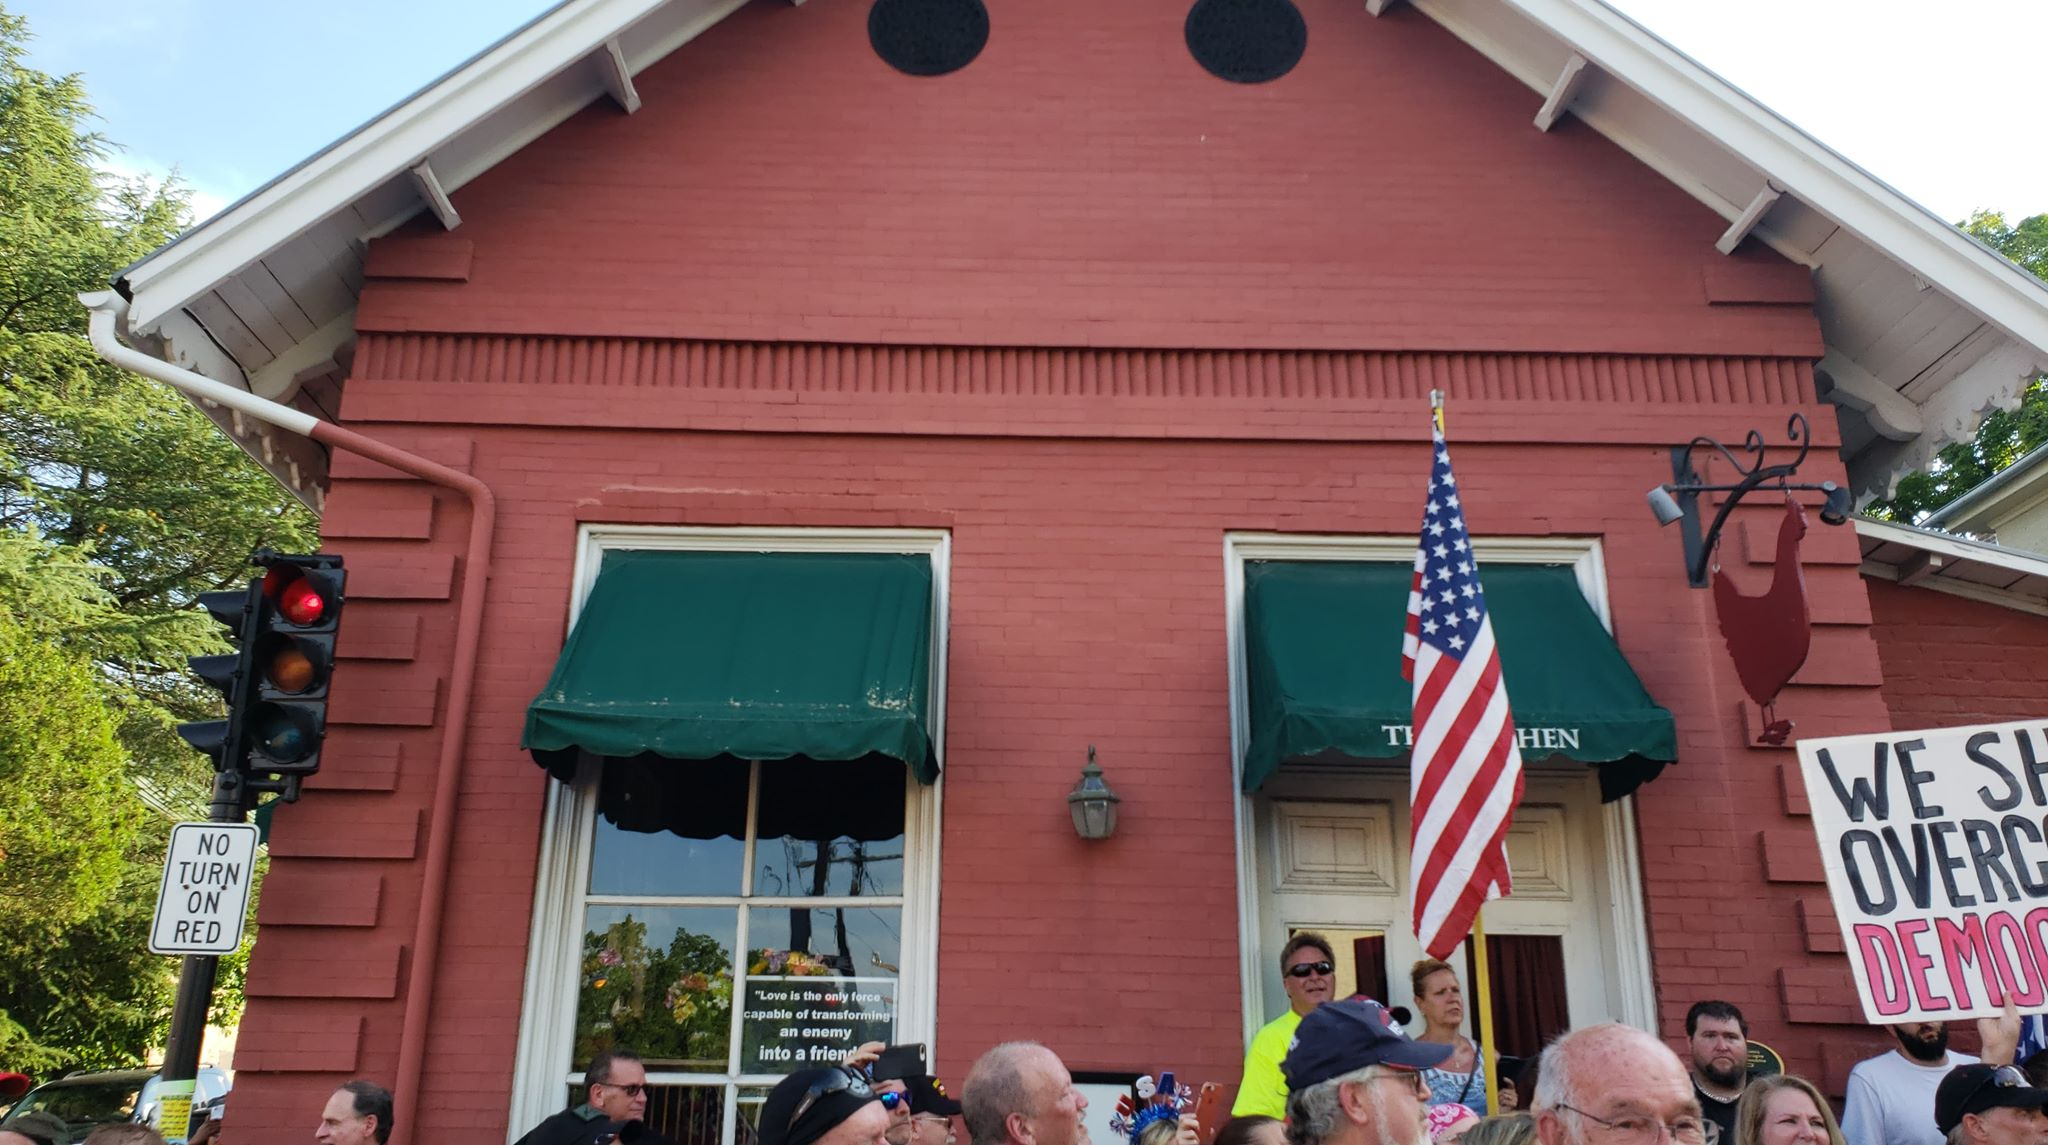 Bikers For Trump showcase the The Red Hen building in support of Sarah Huckabee Sanders. Image credit to Mackall W. Acheson III.